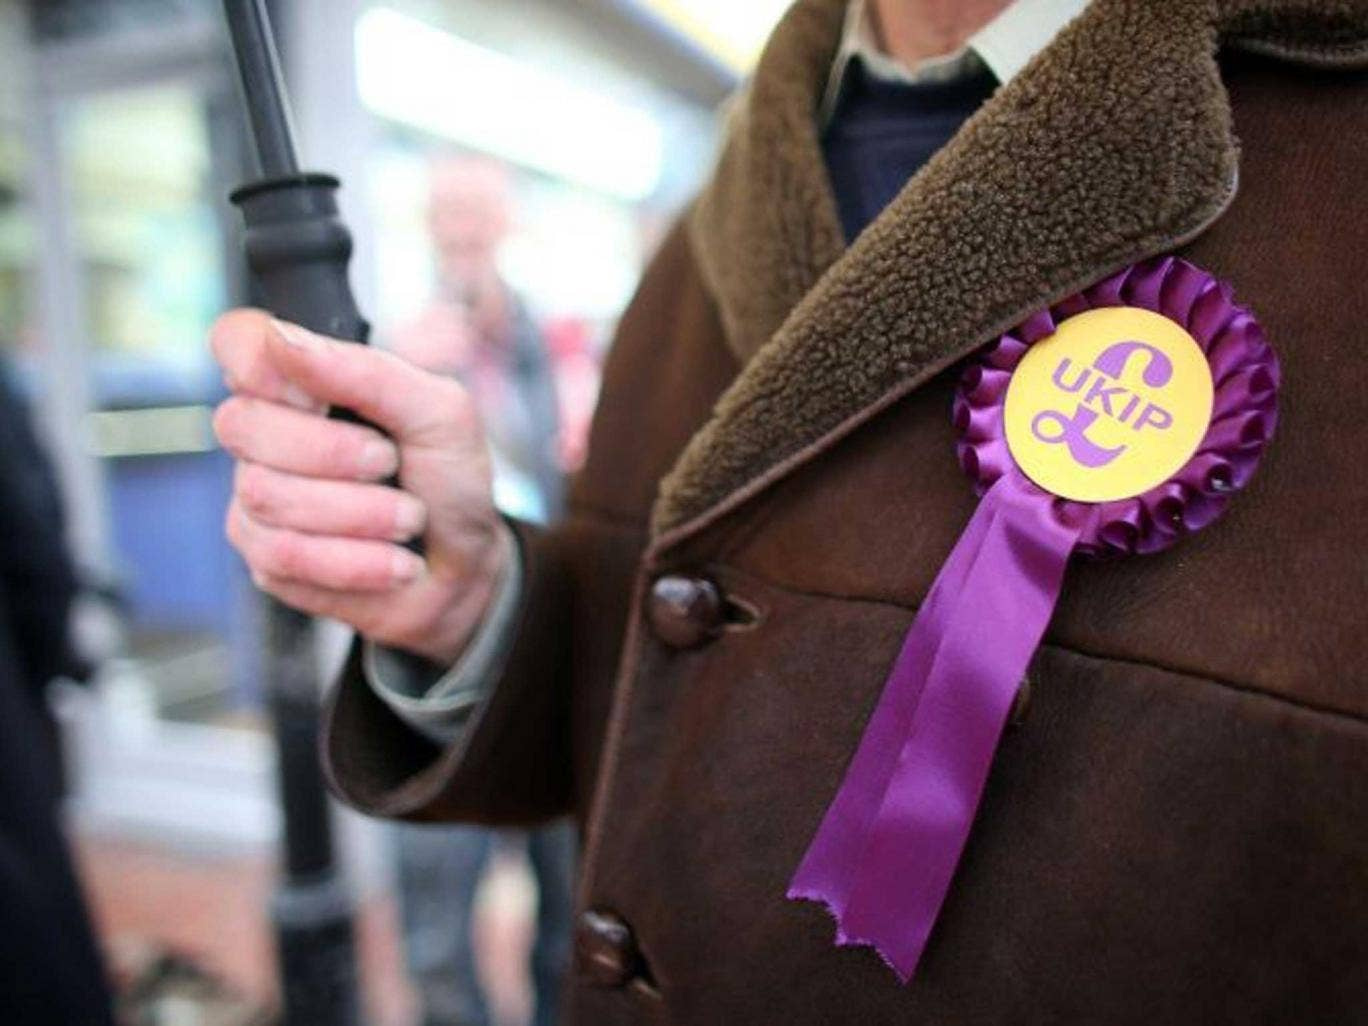 Protest votes: Ukip reaps the benefits of voter dissatisfaction with the main parties